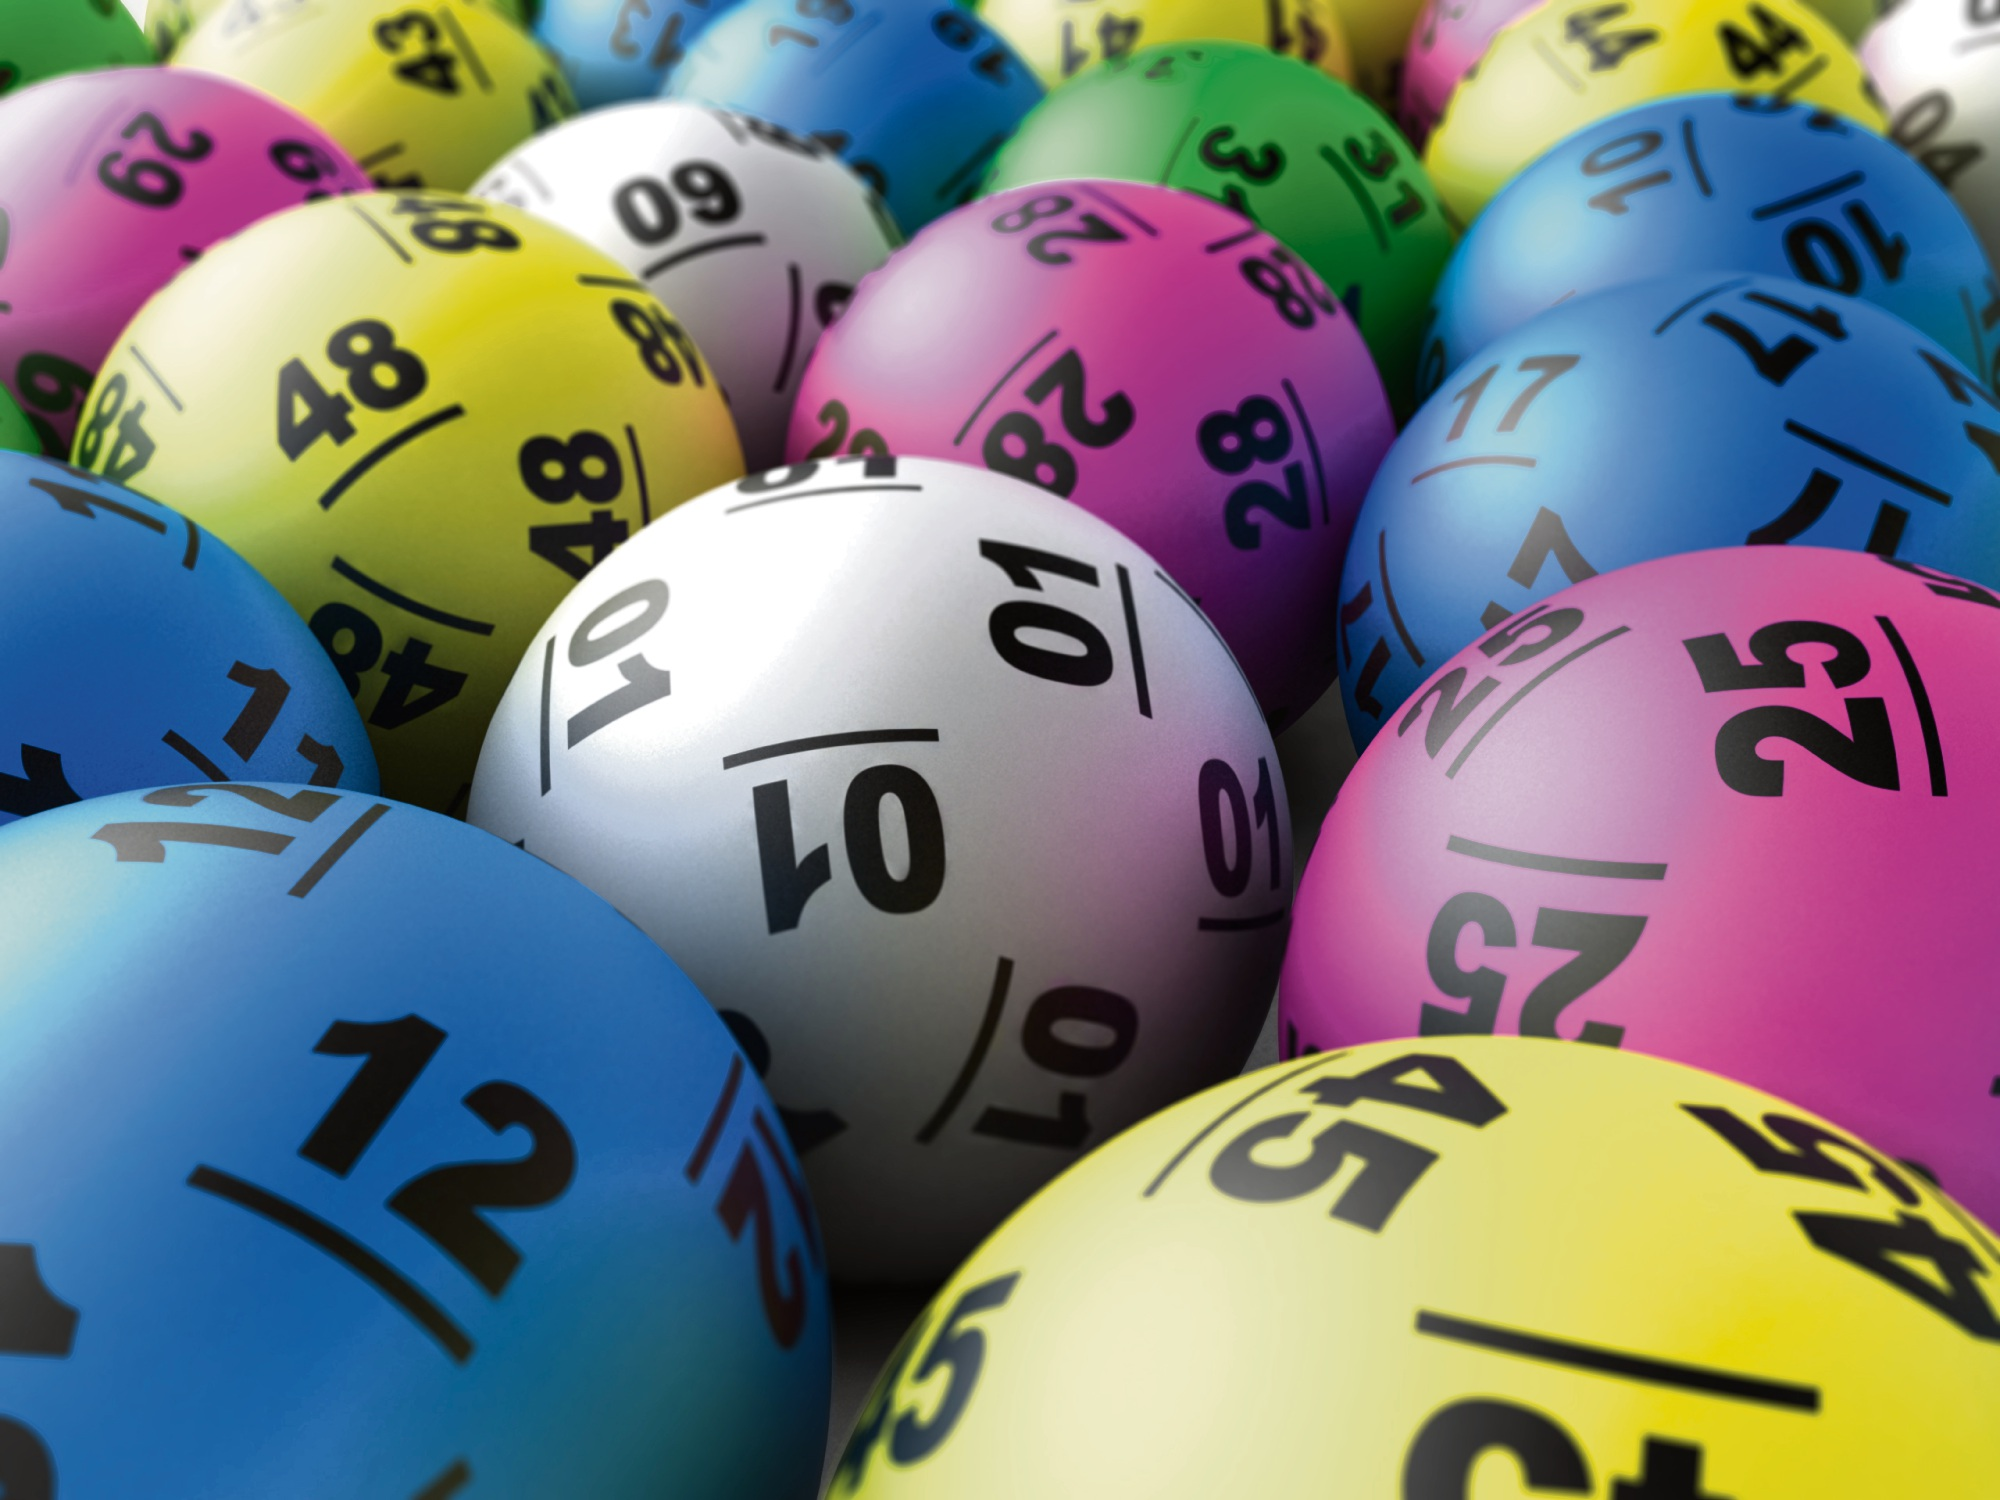 It's time to start buying Lotto: Powerball and Oz Lotto jackpots have hit $150 million